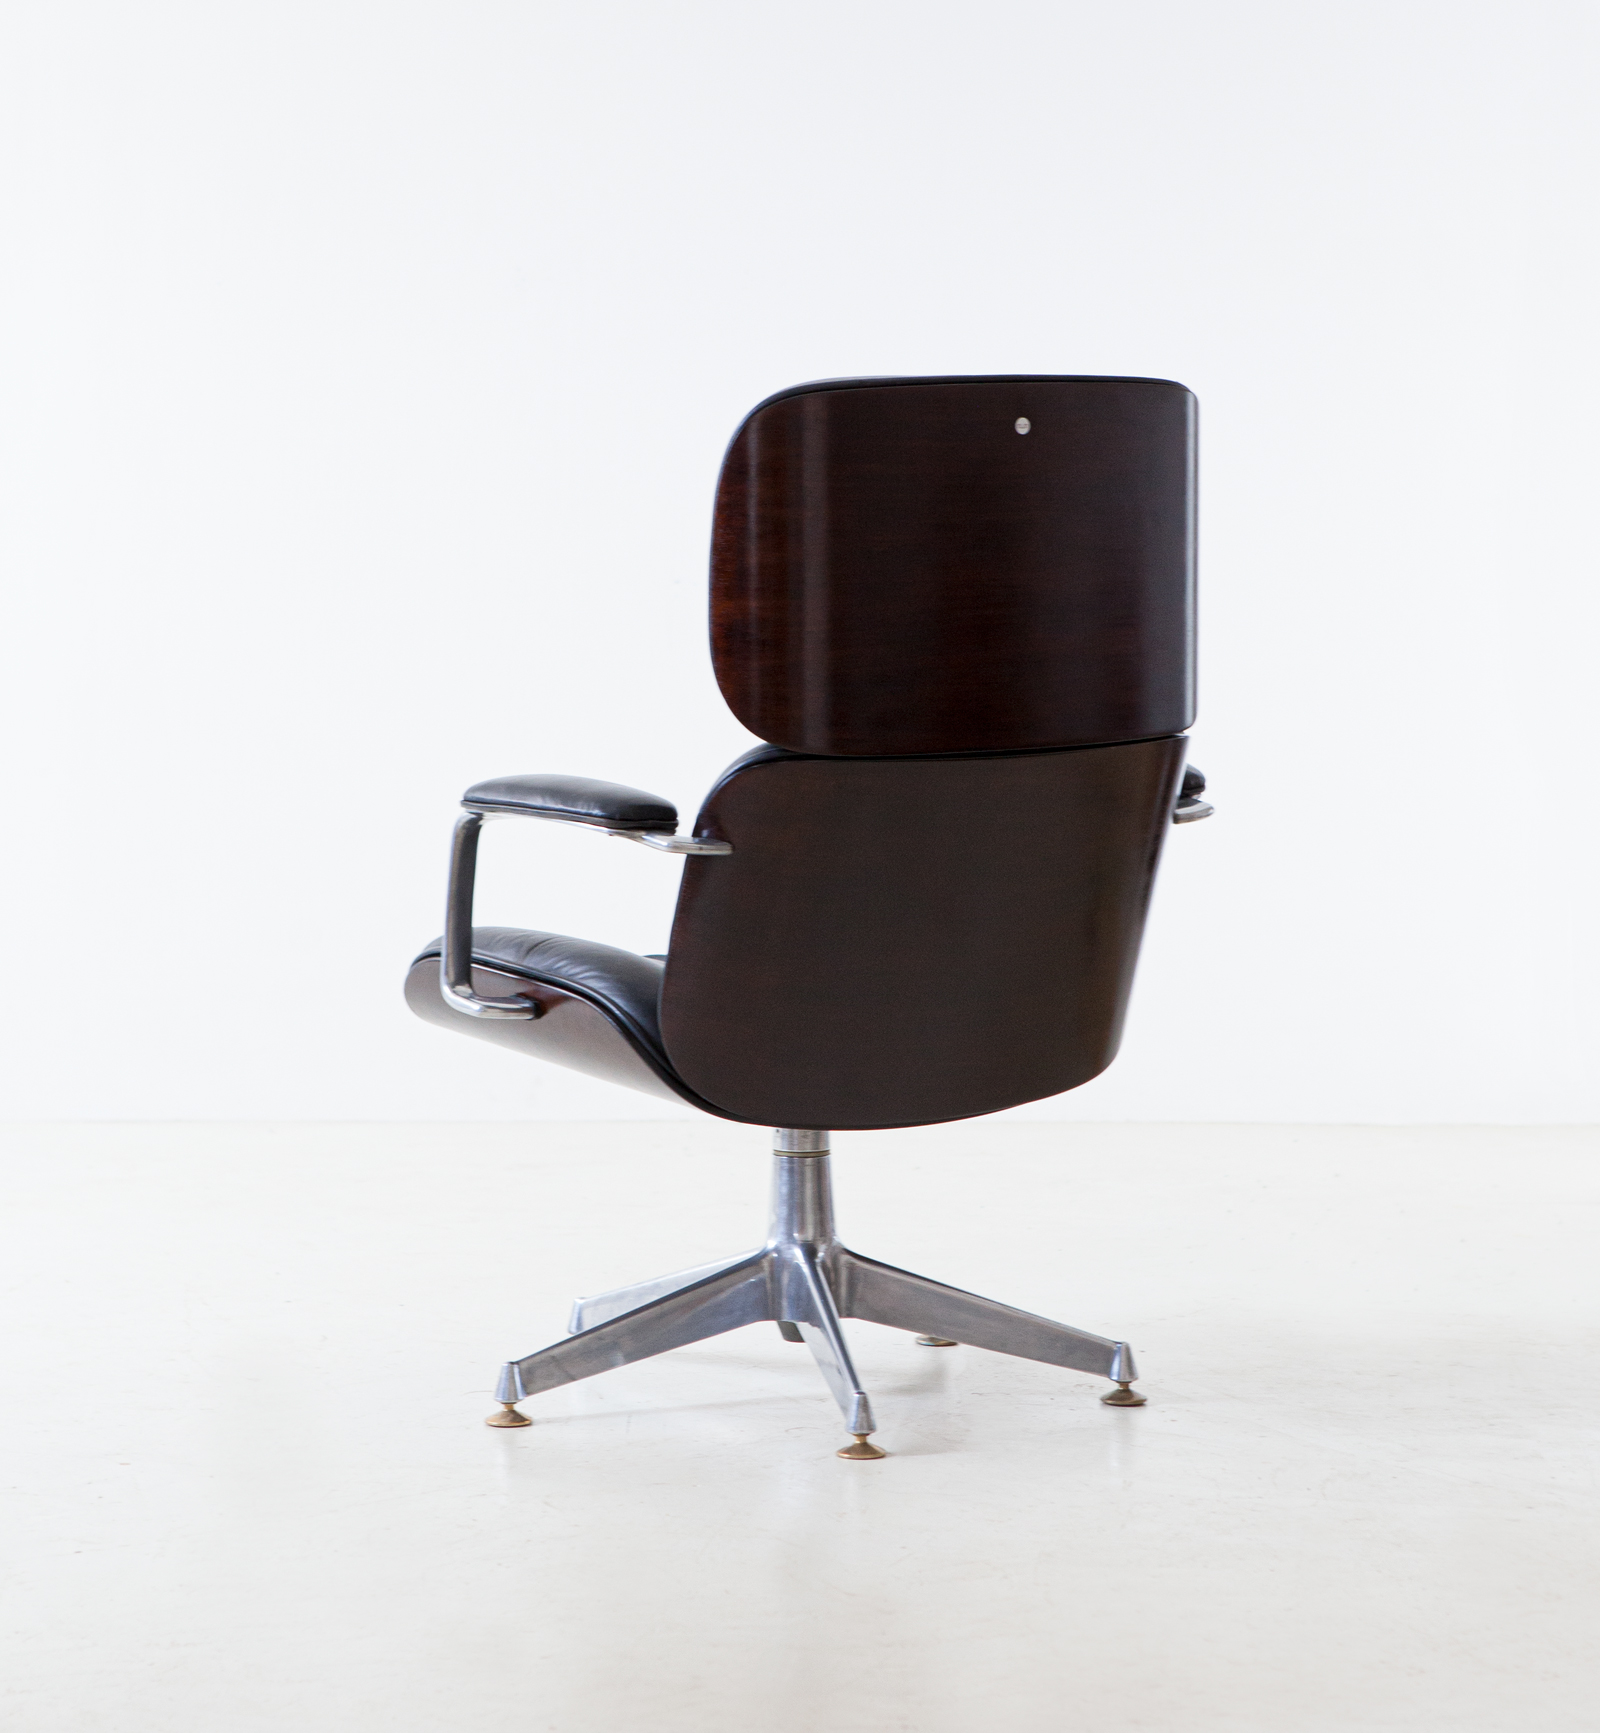 1950s-executive-desk-chair-by-Ico-Parisi-for-M.i.M.-1-SE332